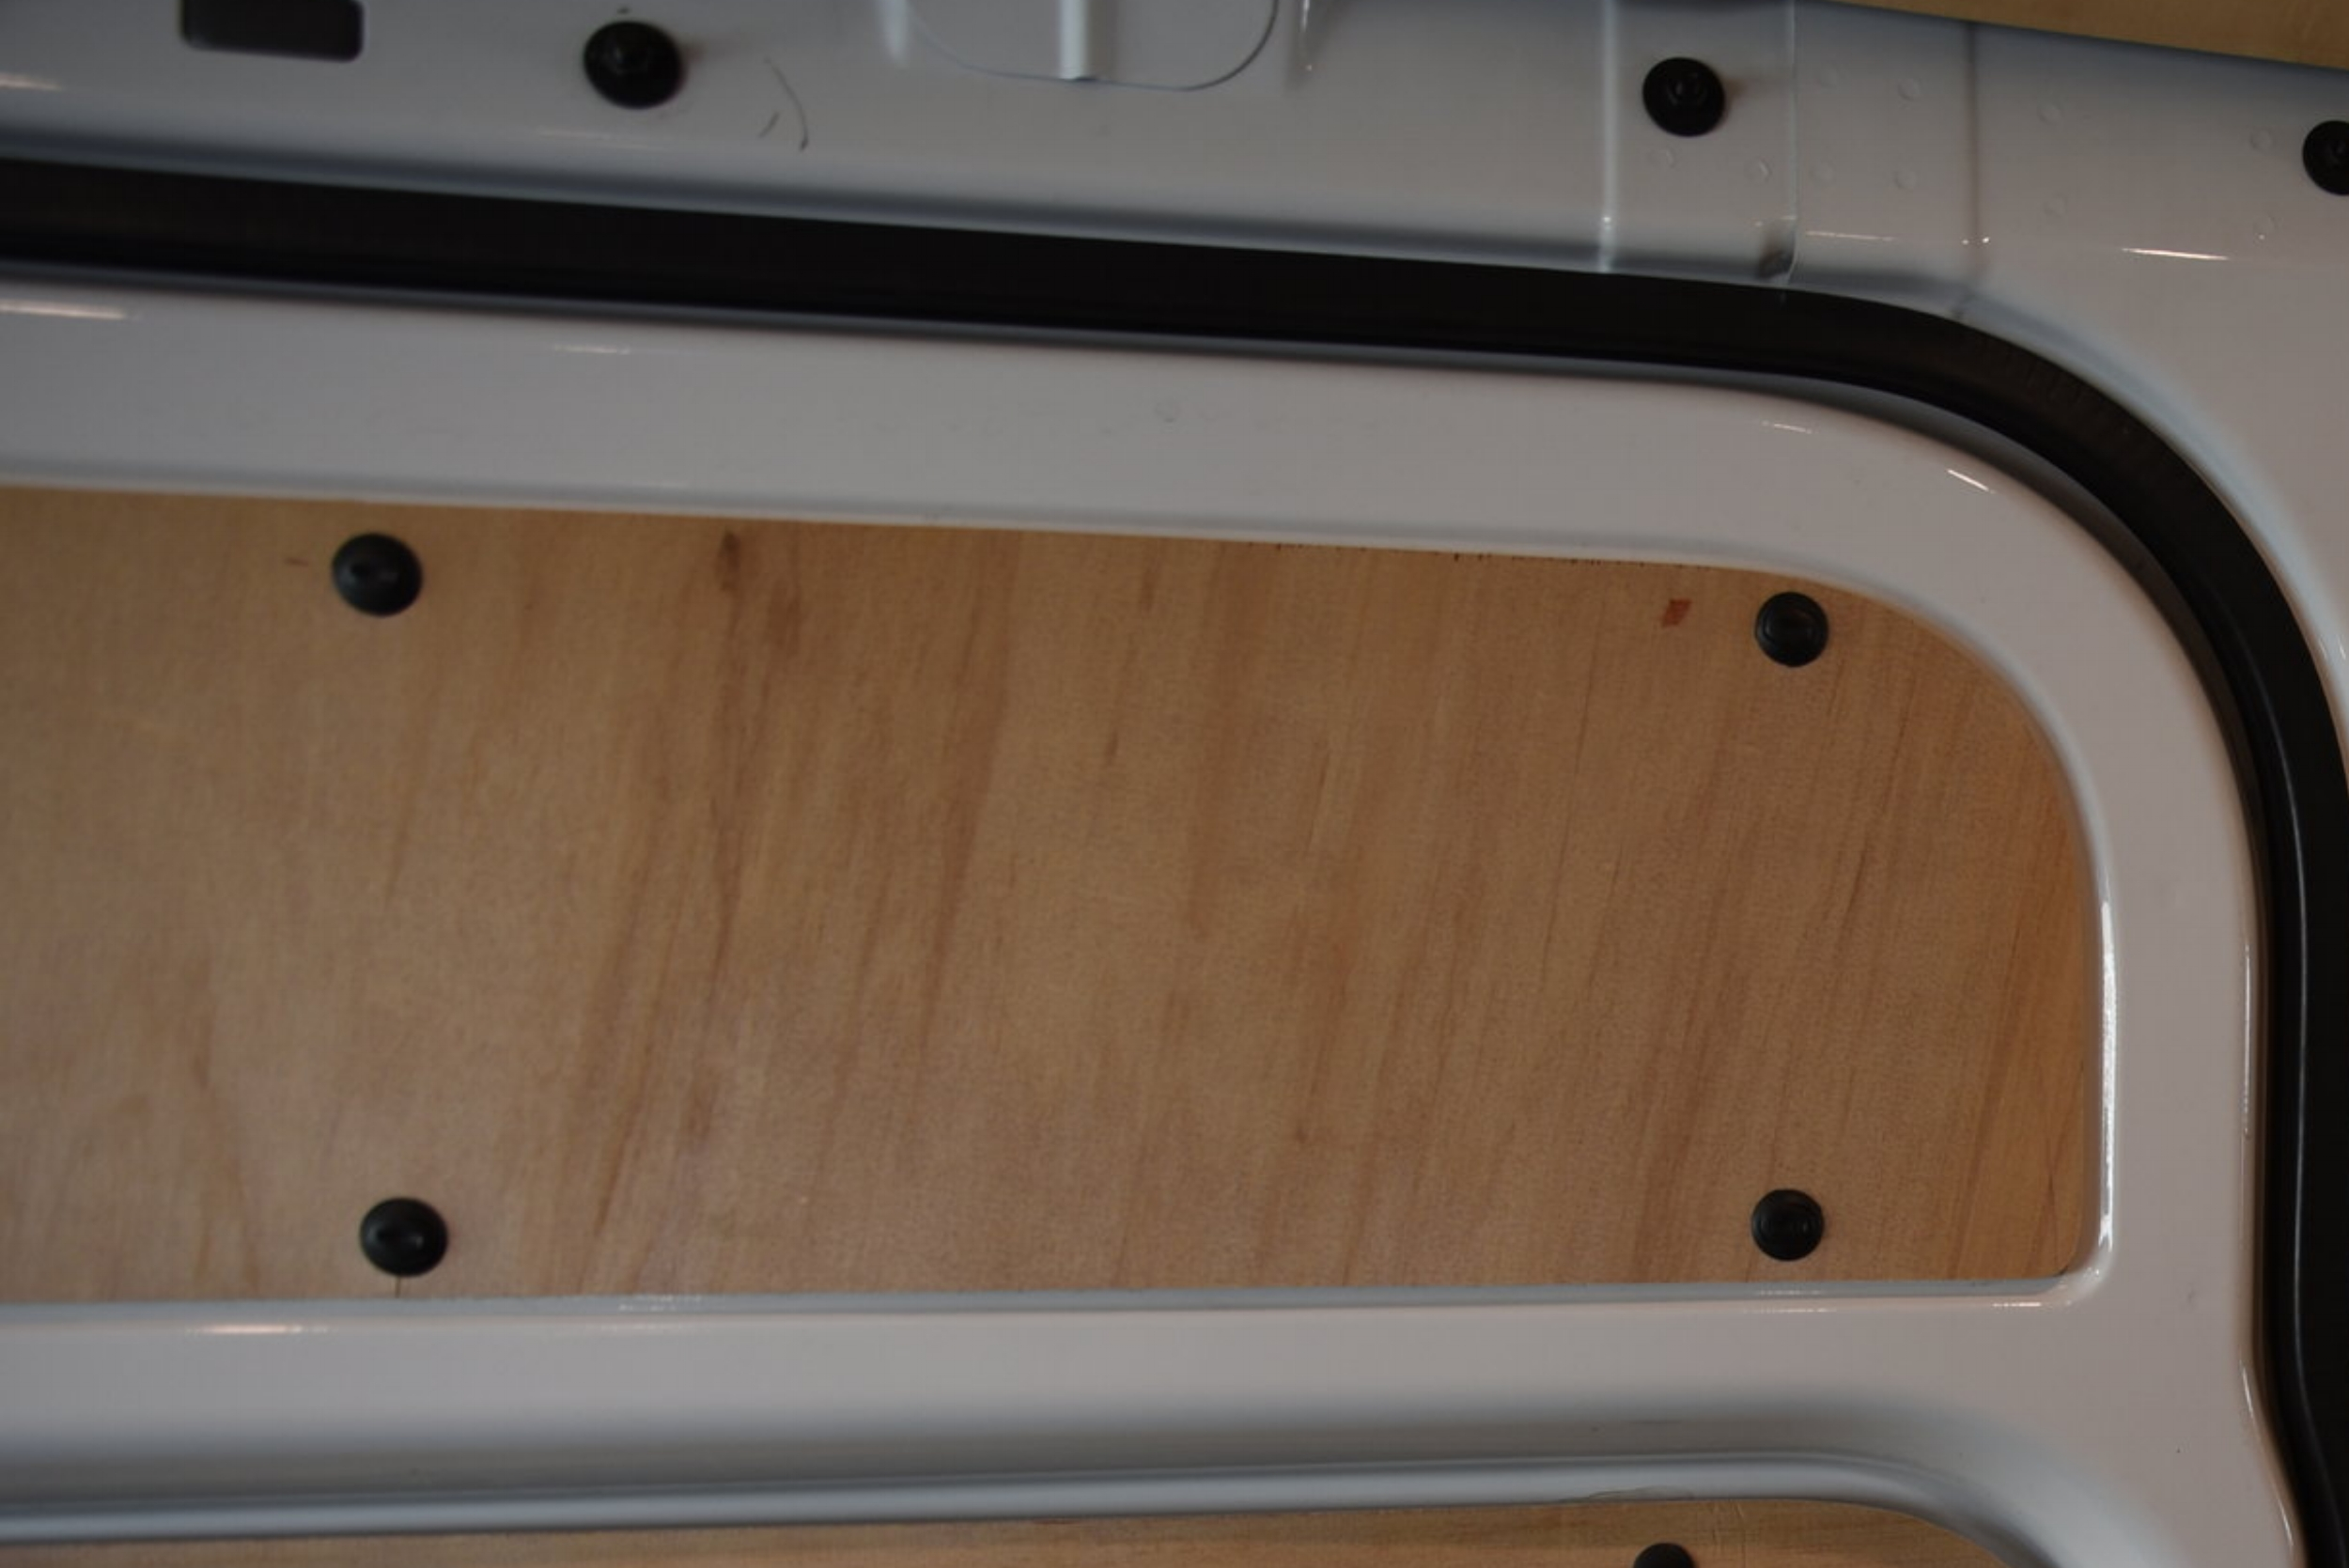 We used the same plastic clips from the doors' original plastic panels to attach the wood panels.